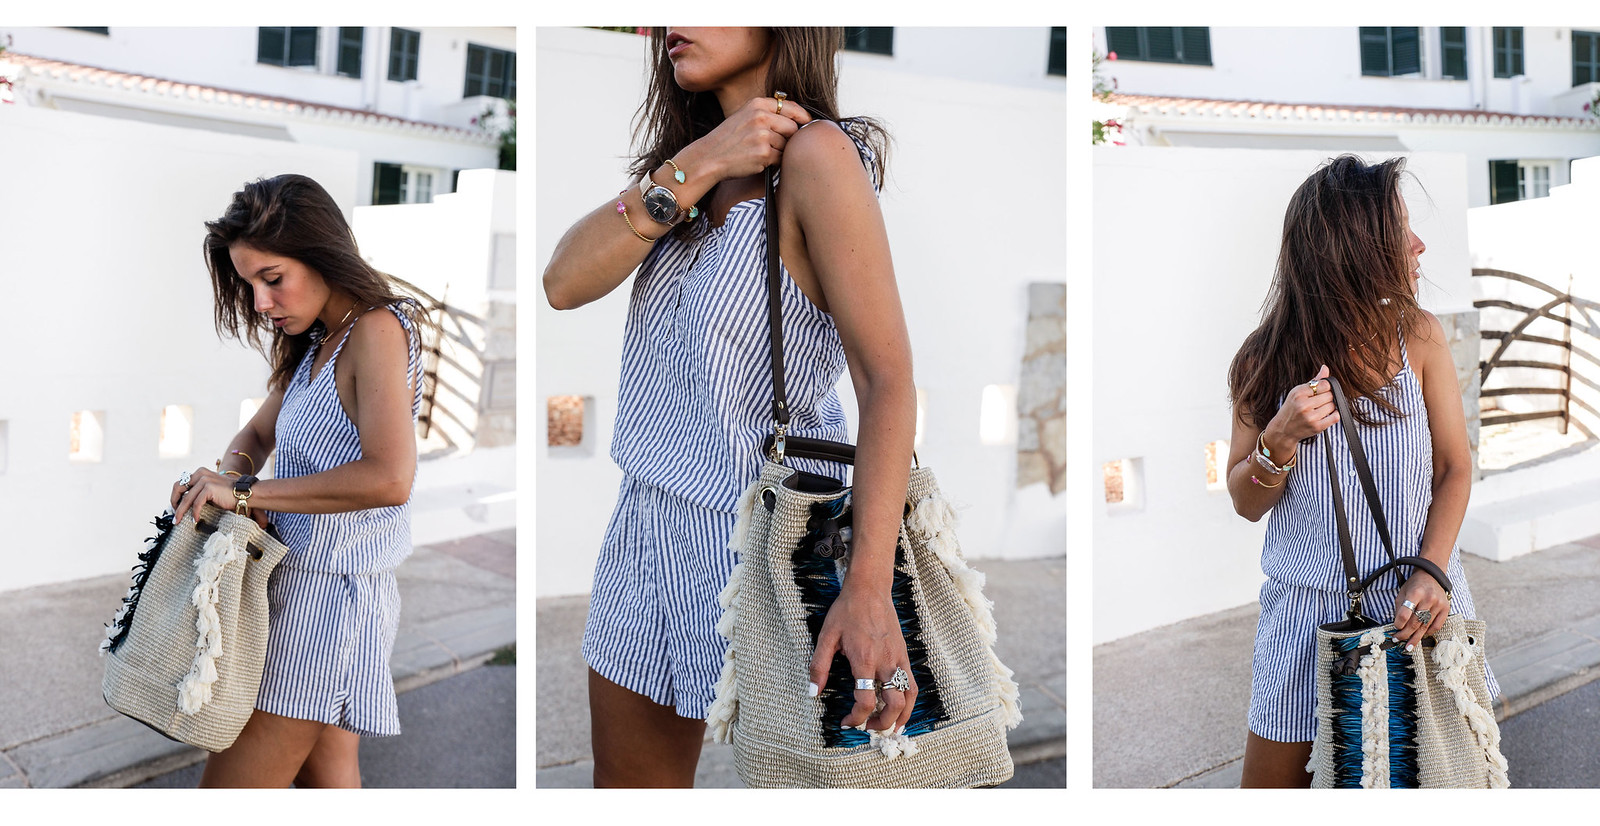 08_Mono_rayas_marineras_casual_outfit_theguestgirl_bolso_boho_via_email_pieces_style_the_guest_girl_influencer_menorca_minorca_barcelona_spain_fashion_blogger